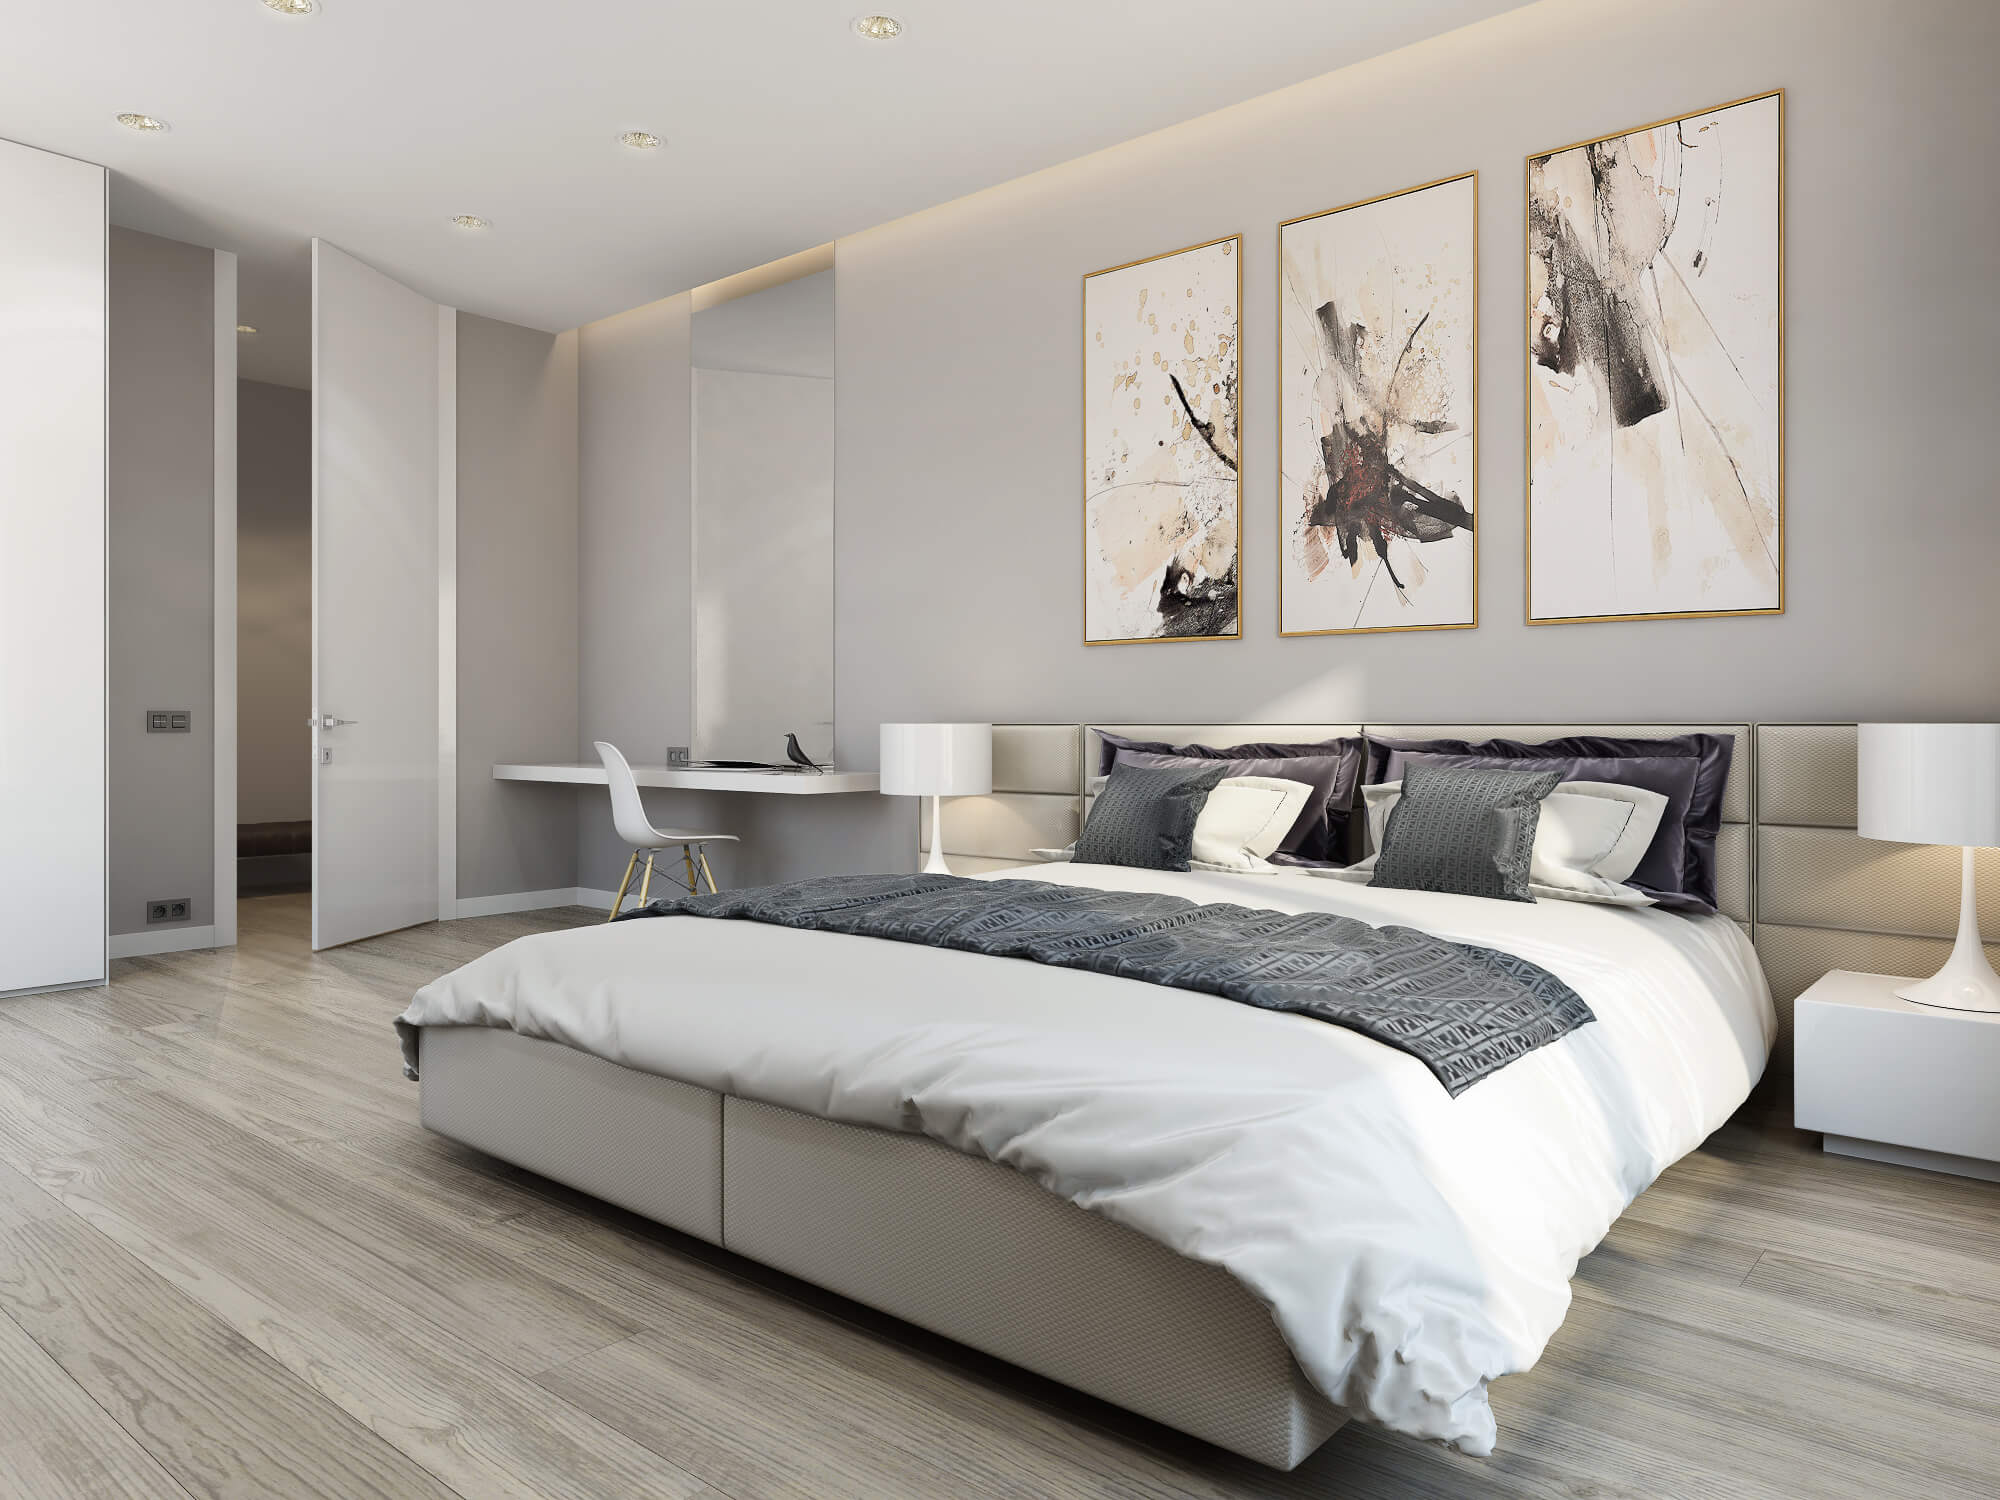 Bedroom Design Minimalist